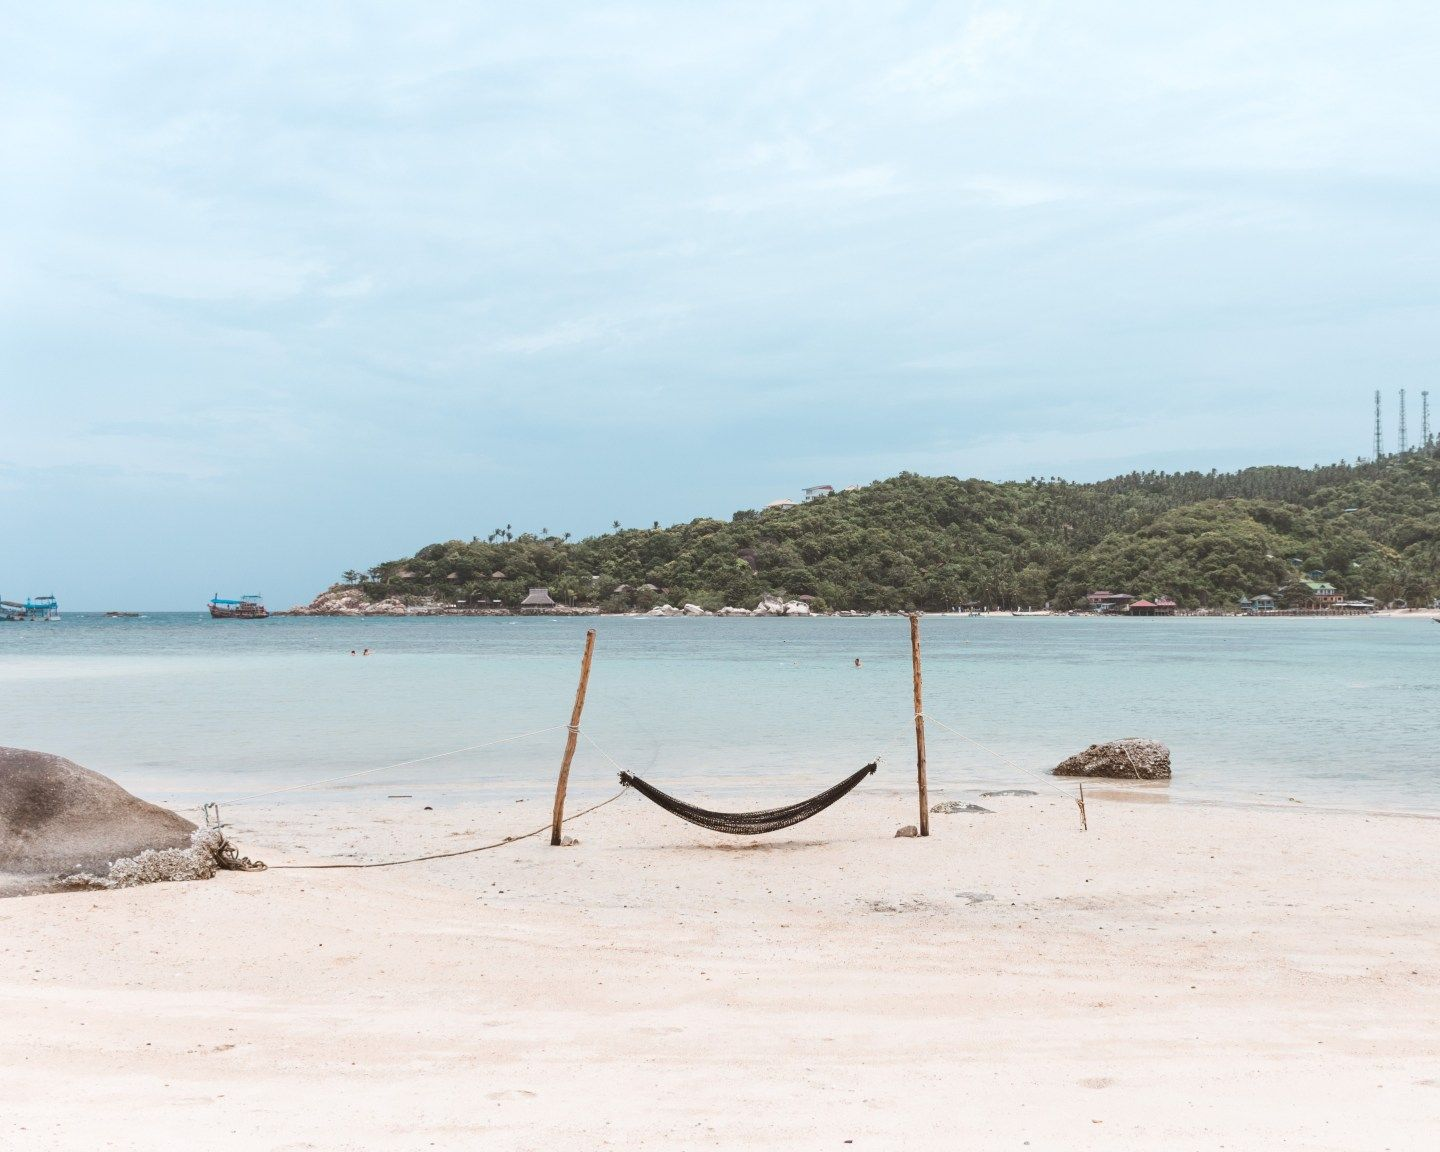 Taa Toh Bay Koh Tao The Perfect Secluded Koh Tao Beach Freedom Beach Beach Activities Secluded